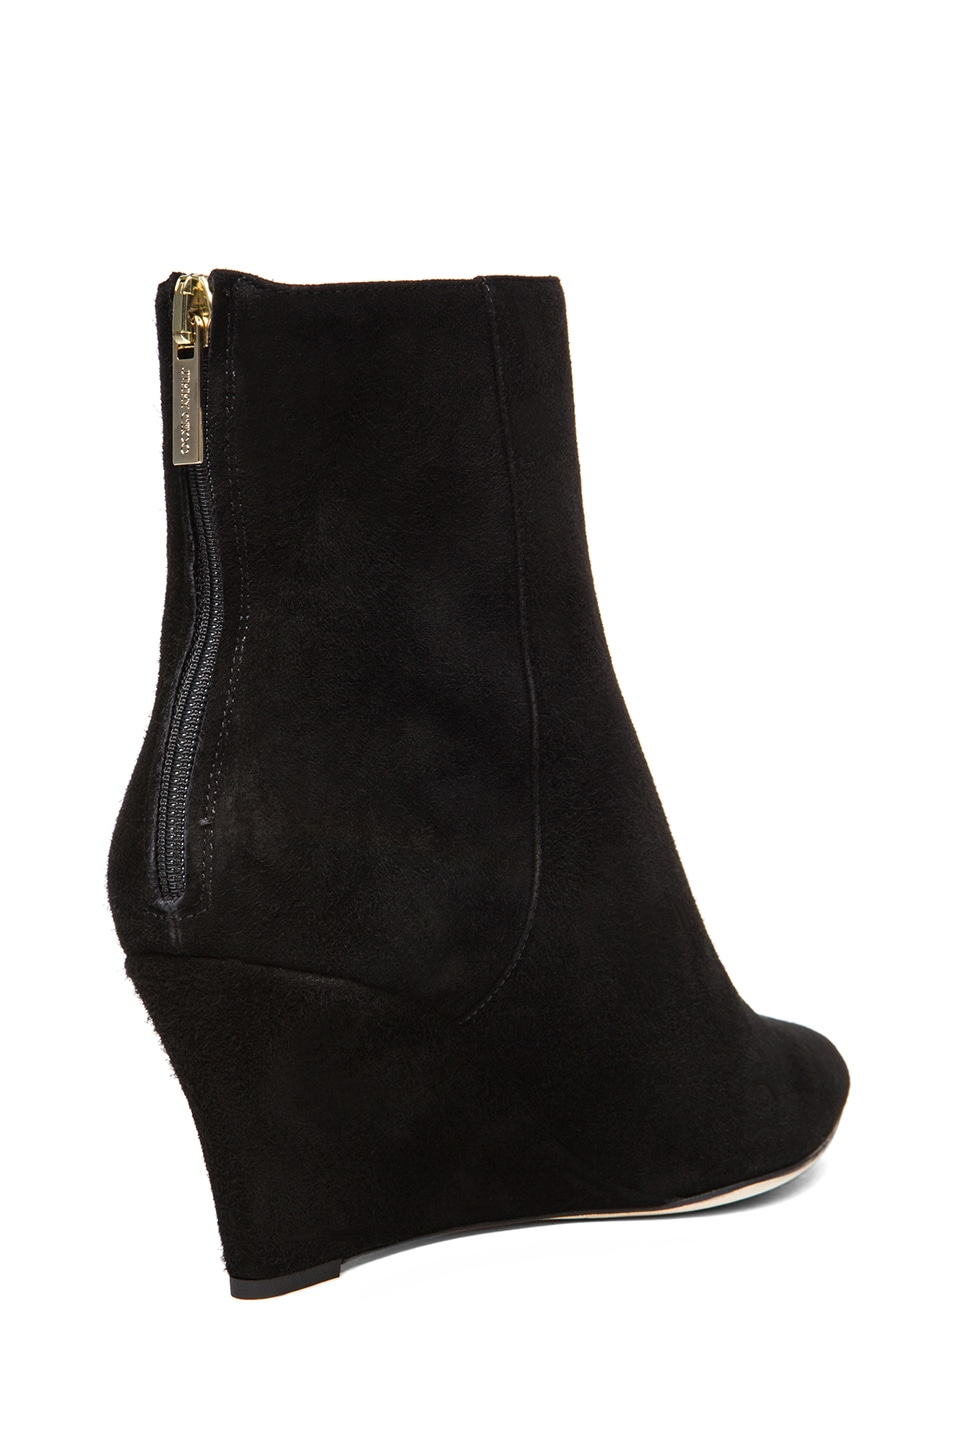 Image 3 of Jimmy Choo Mermaid Suede Wedge Ankle Boots in Black